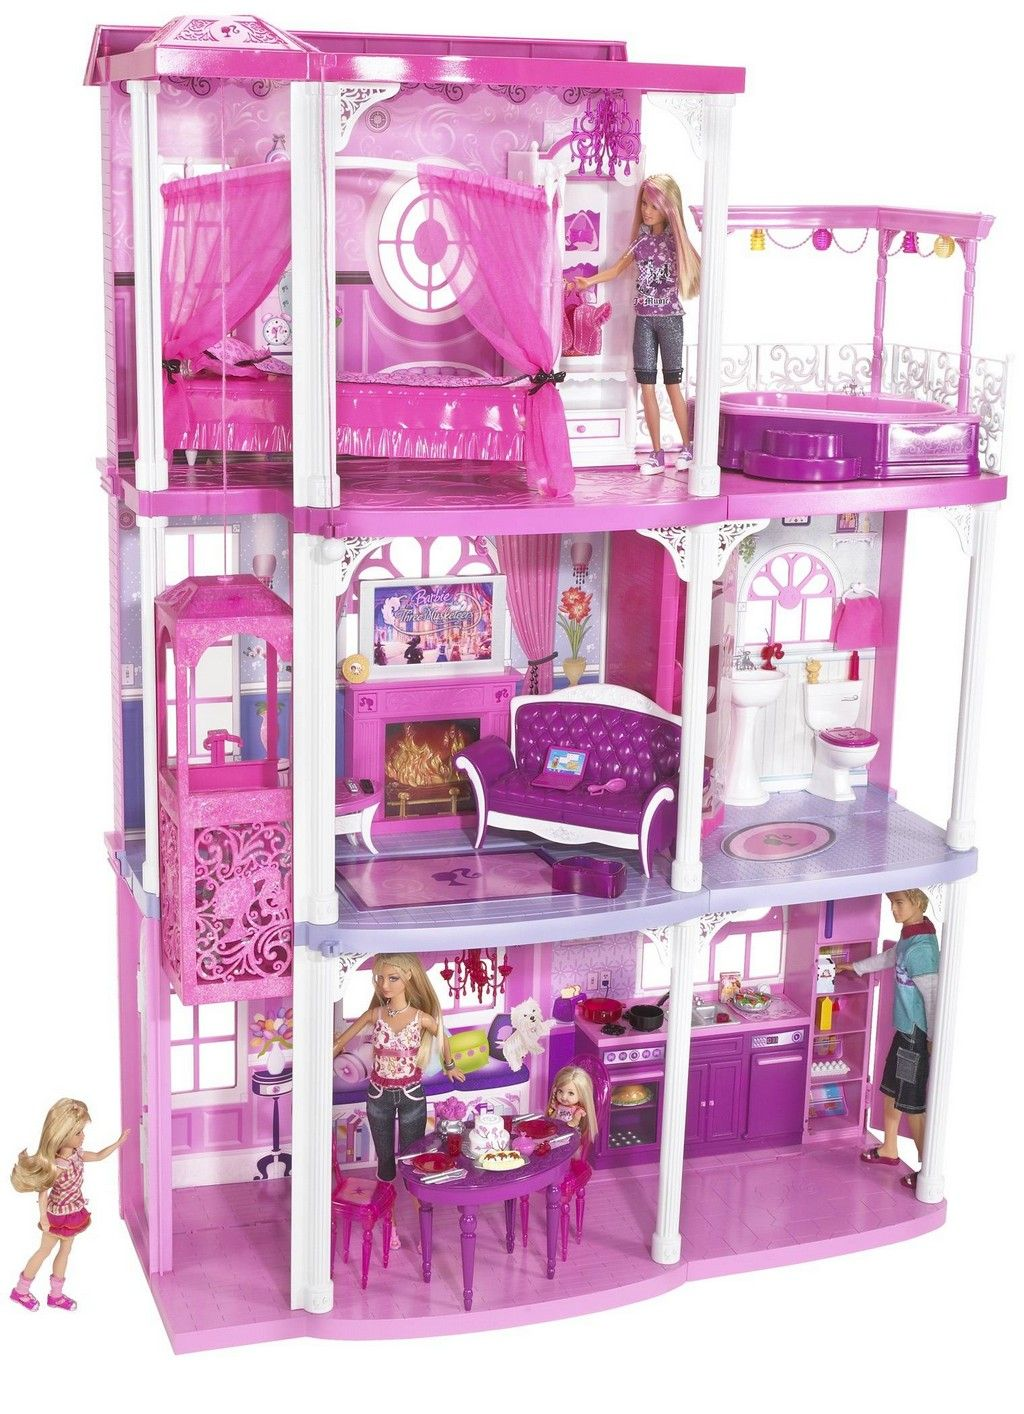 10 awesome barbie doll house models - Barbie Houses Barbie House Wizard Of Oz Barbie Dolls Barbie Dolls Pictures